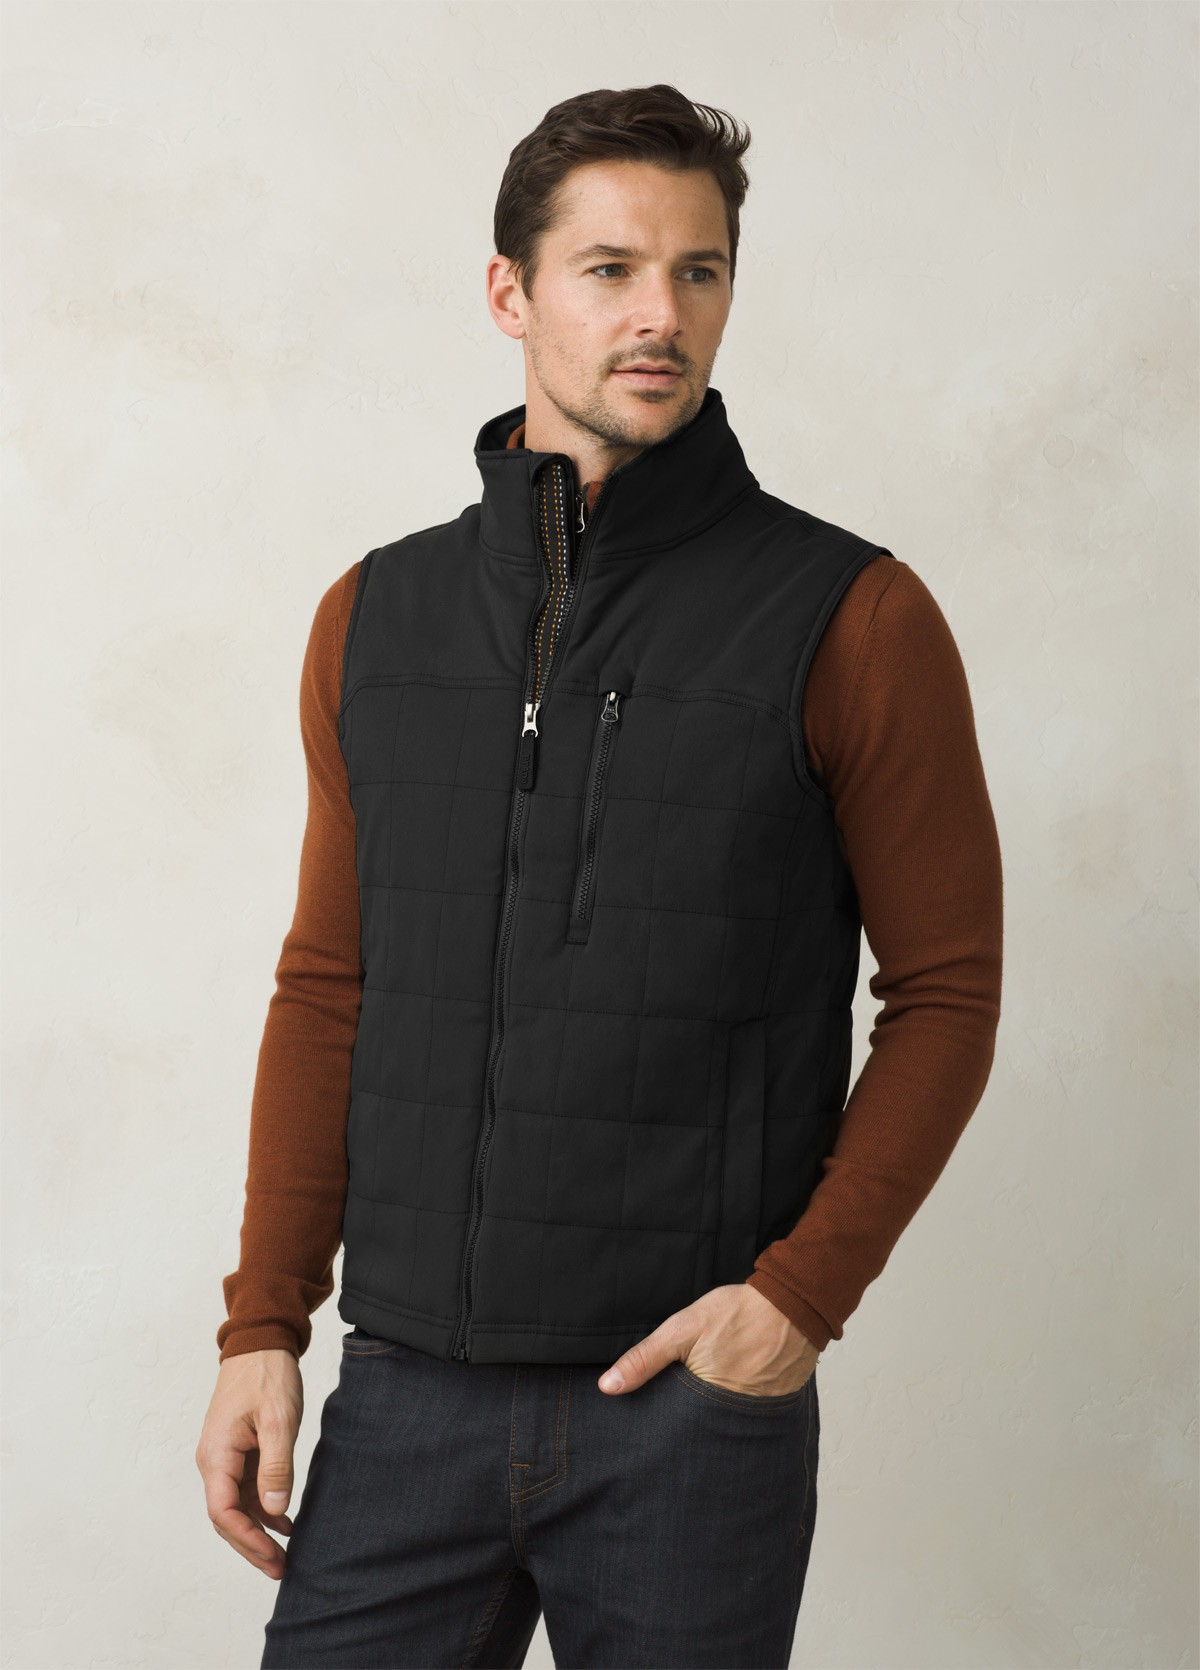 vest for men view larger image xgyvwtc